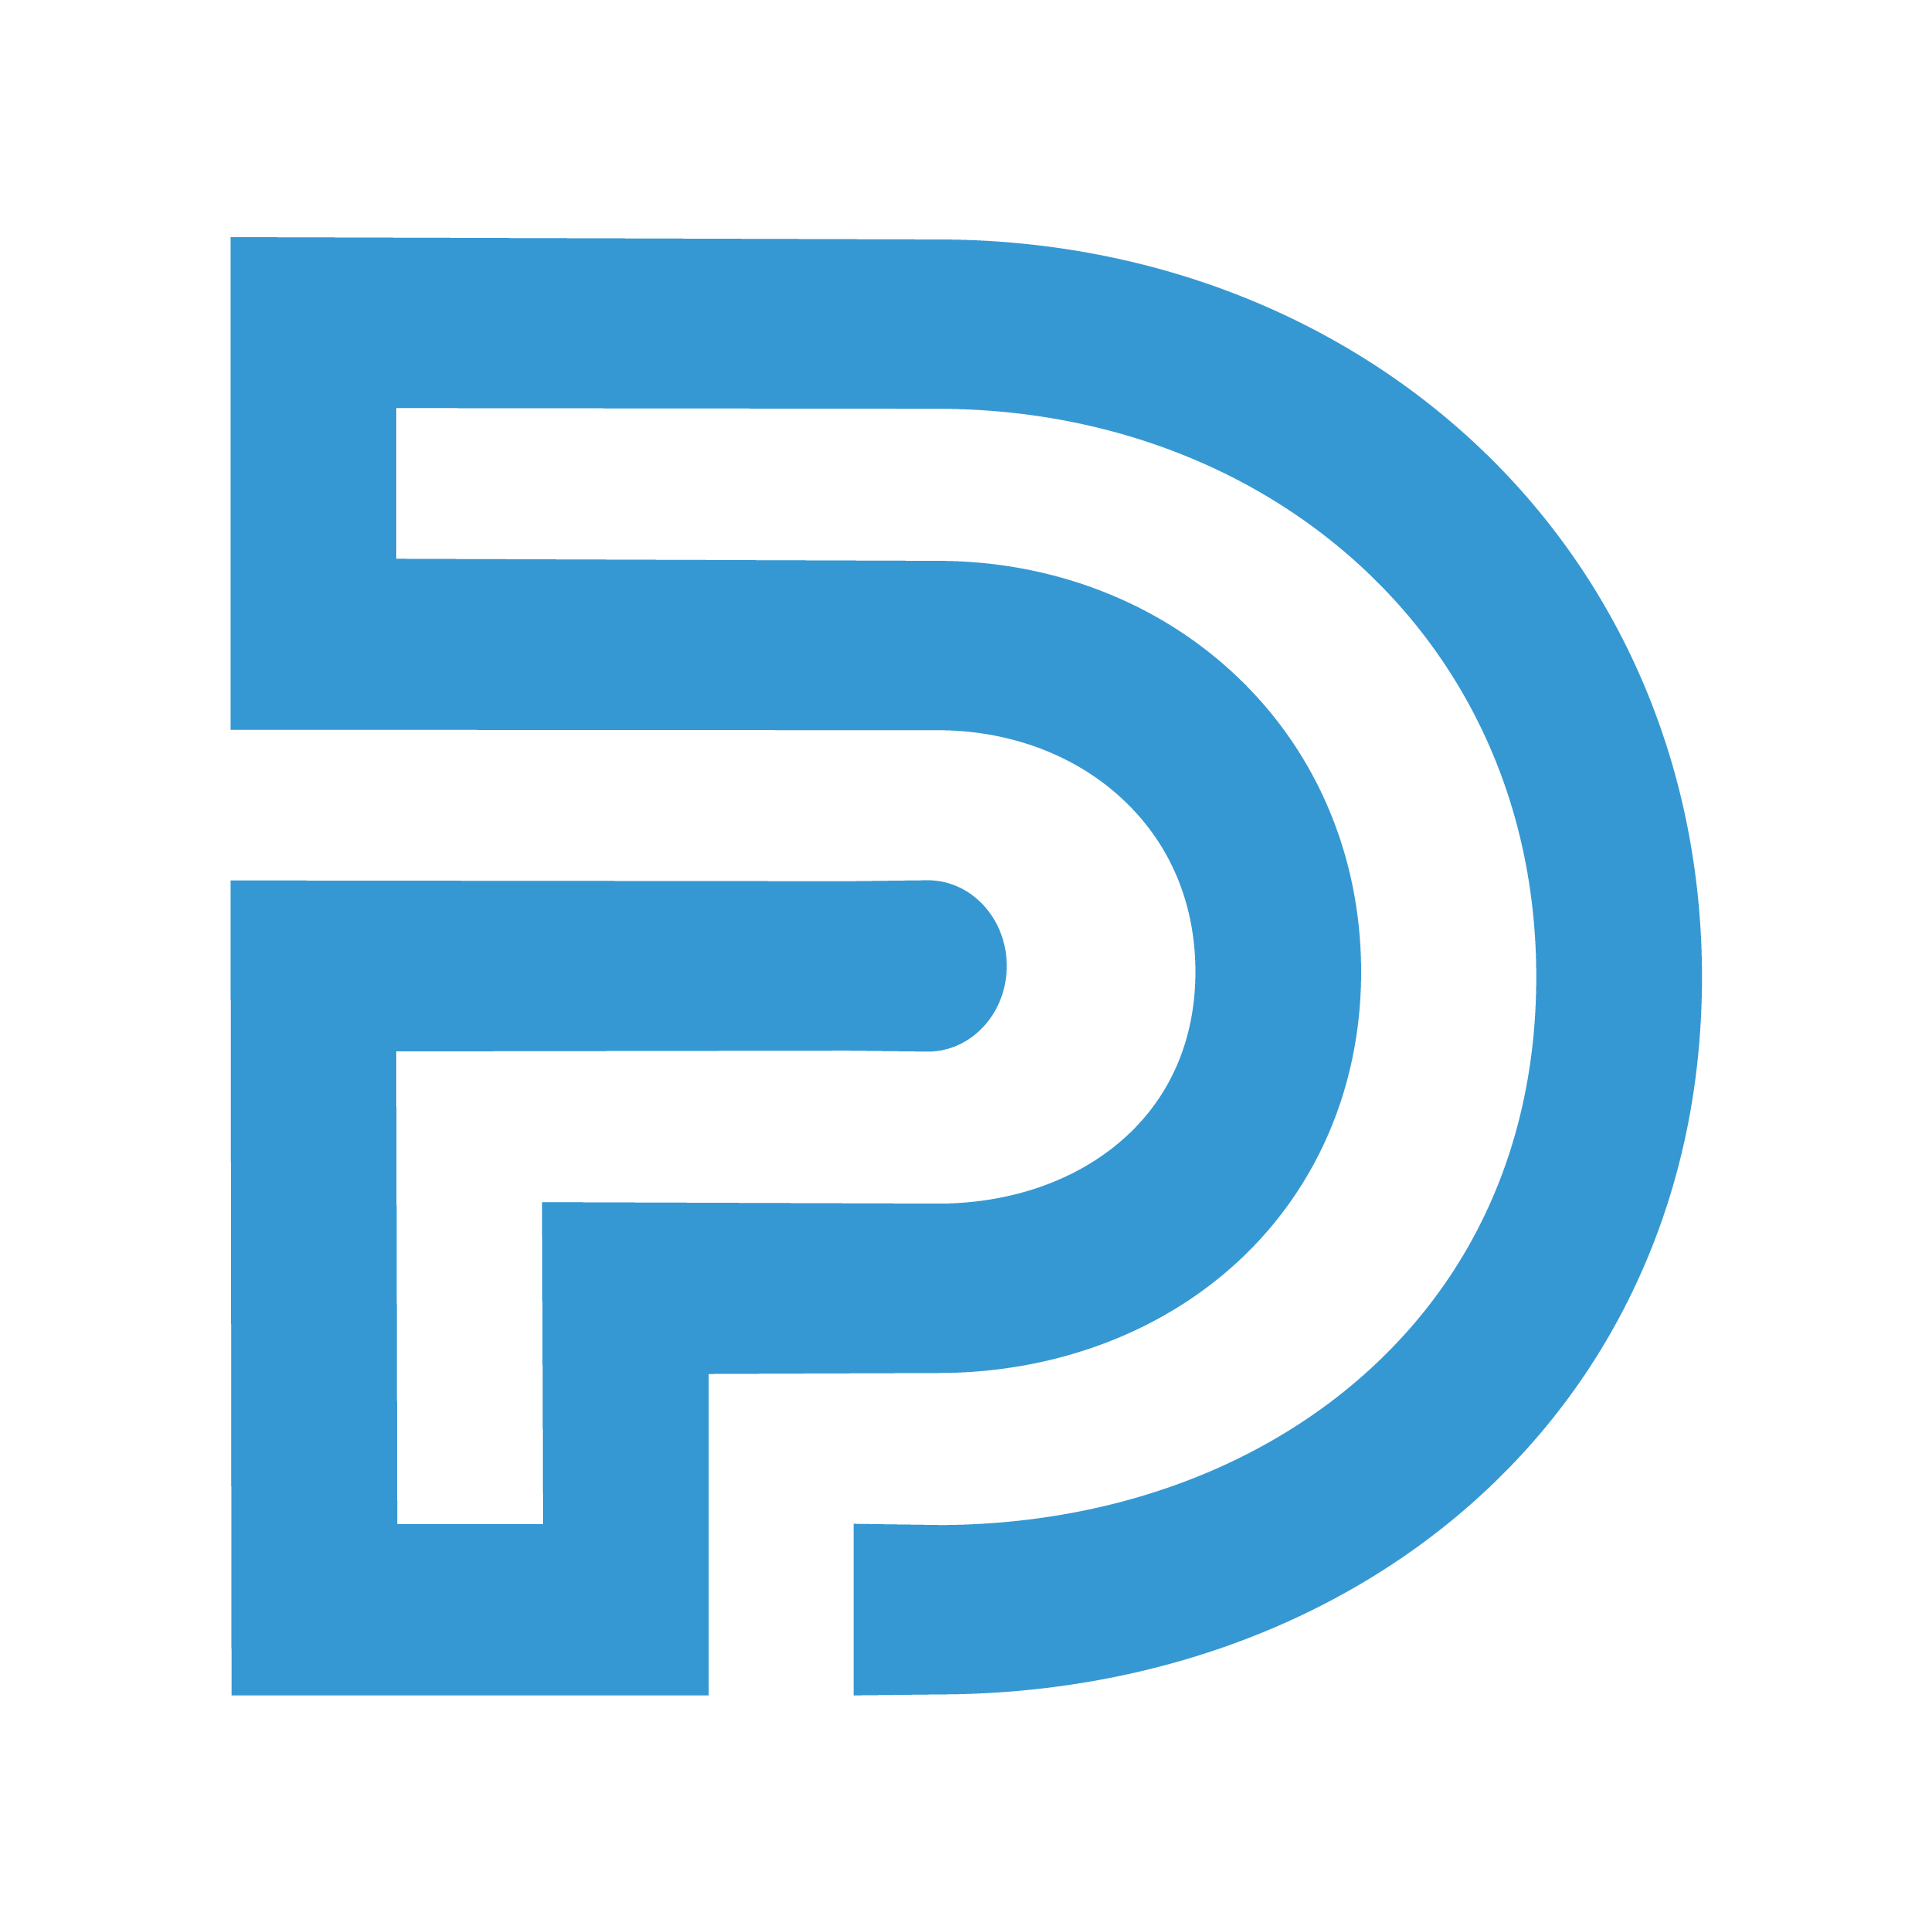 pulse design logo